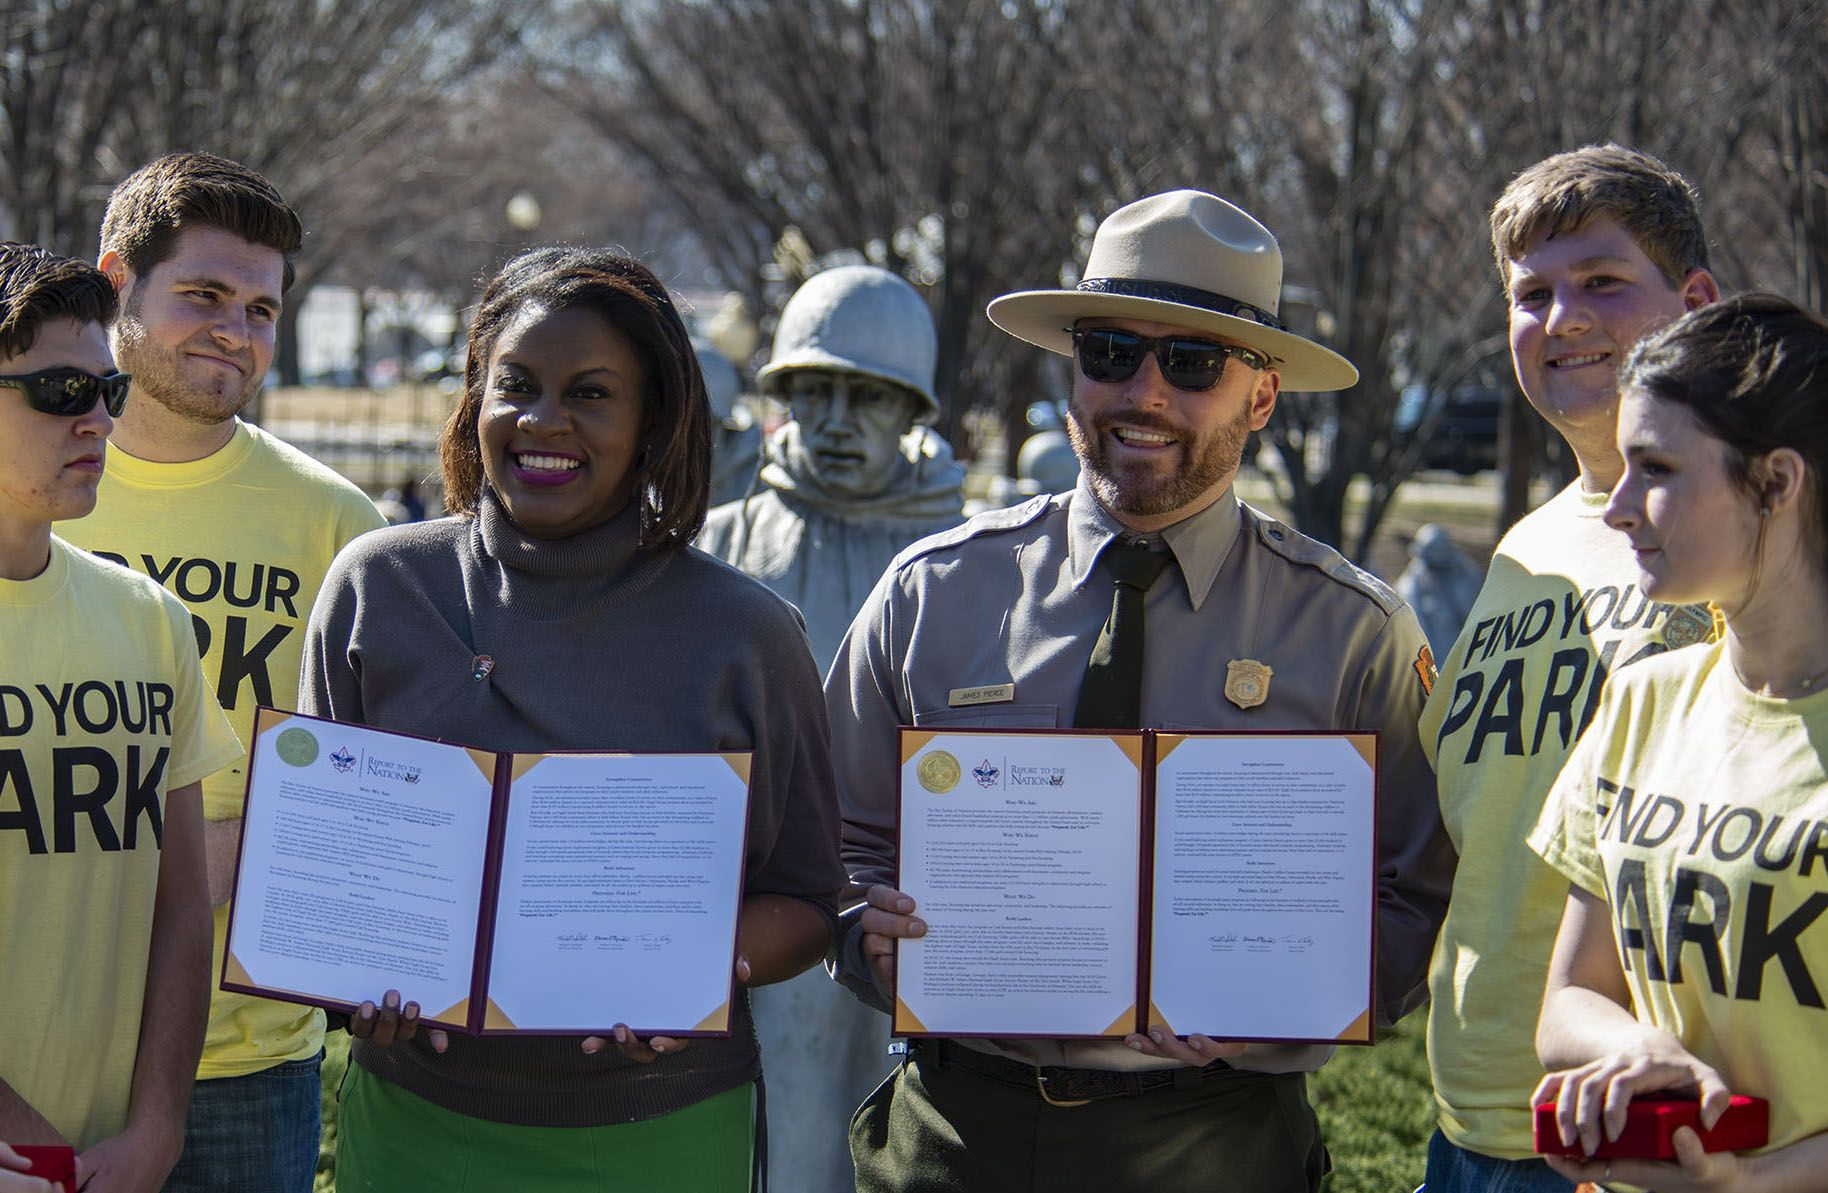 Trevor with members of the National Park Service